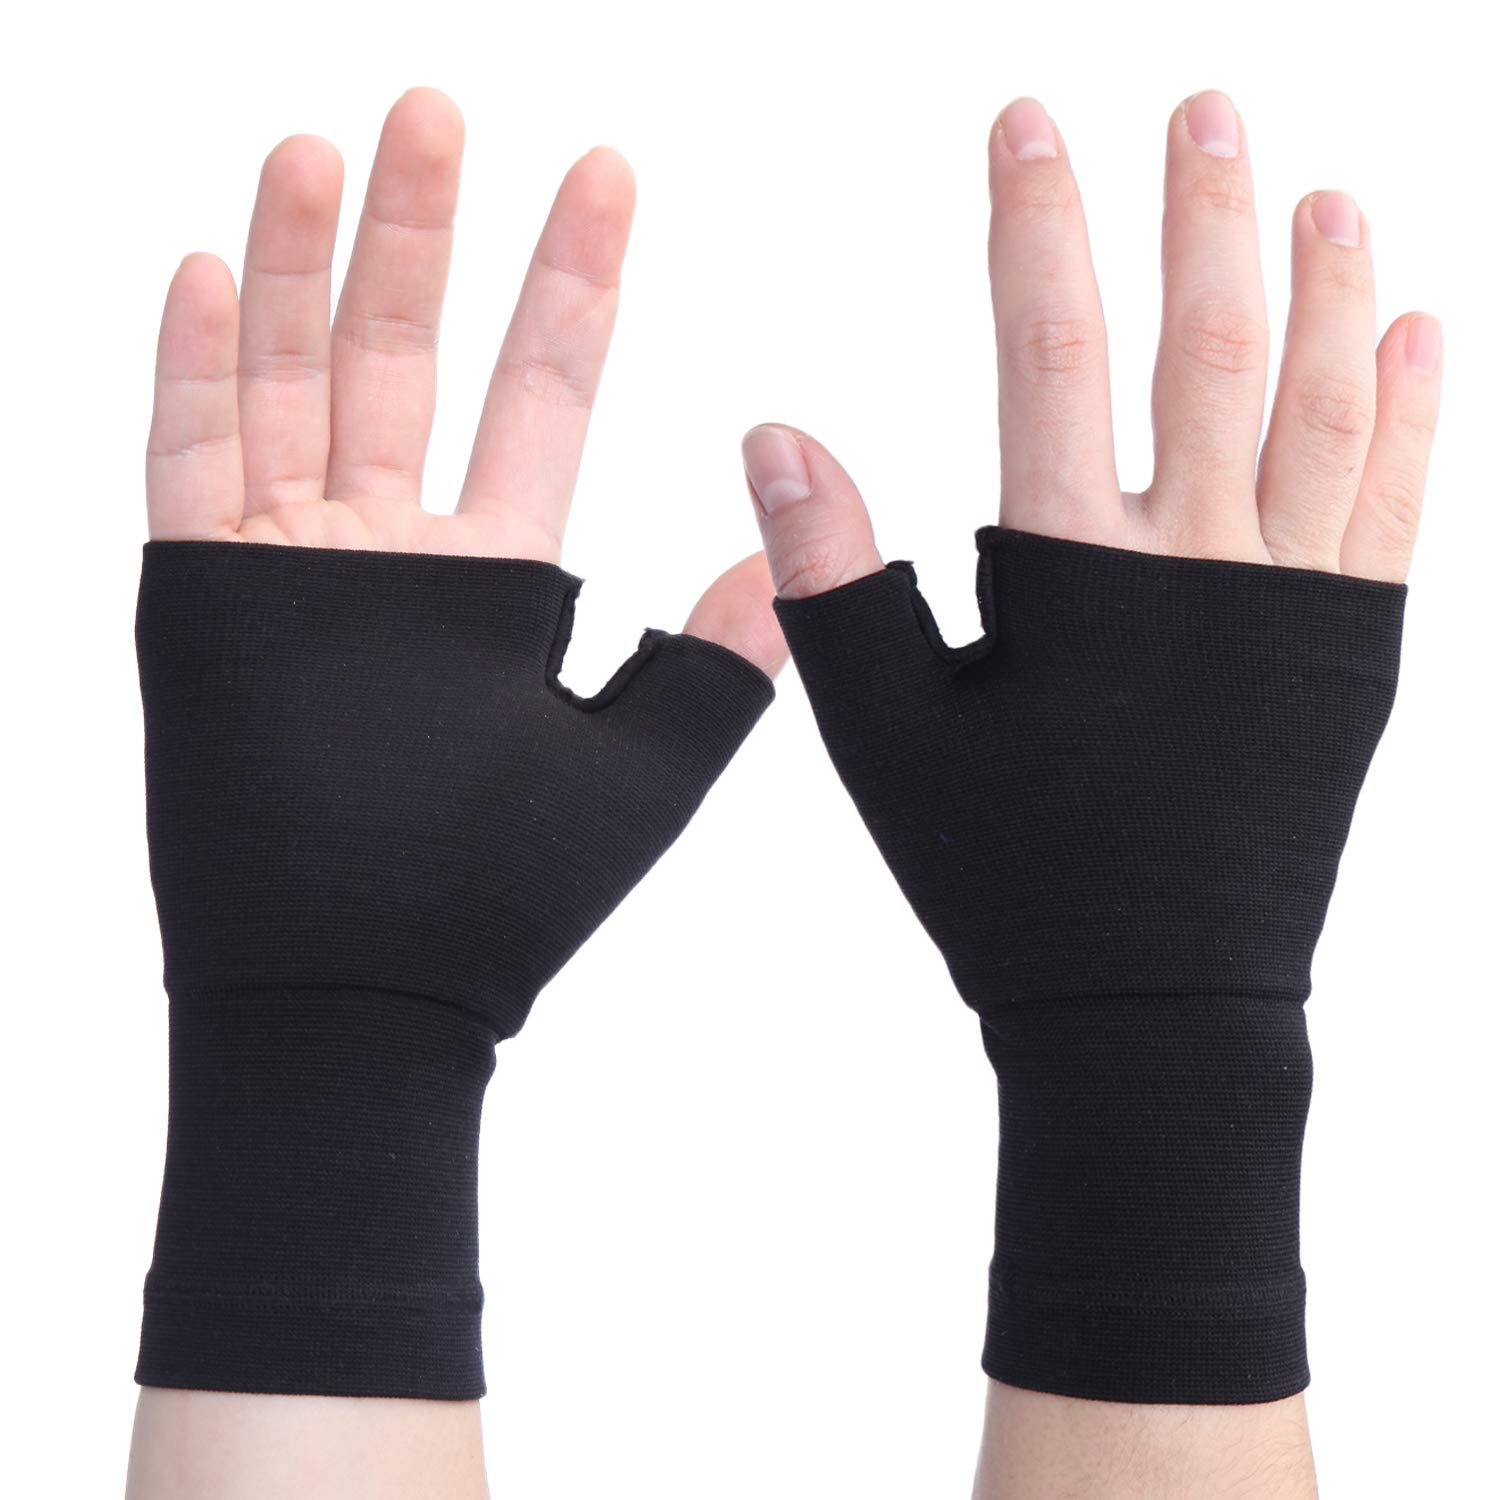 CFR Wrist Sleeve Brace Arthritis Outlet ☆ Free Shipping Sales for sale R Compression